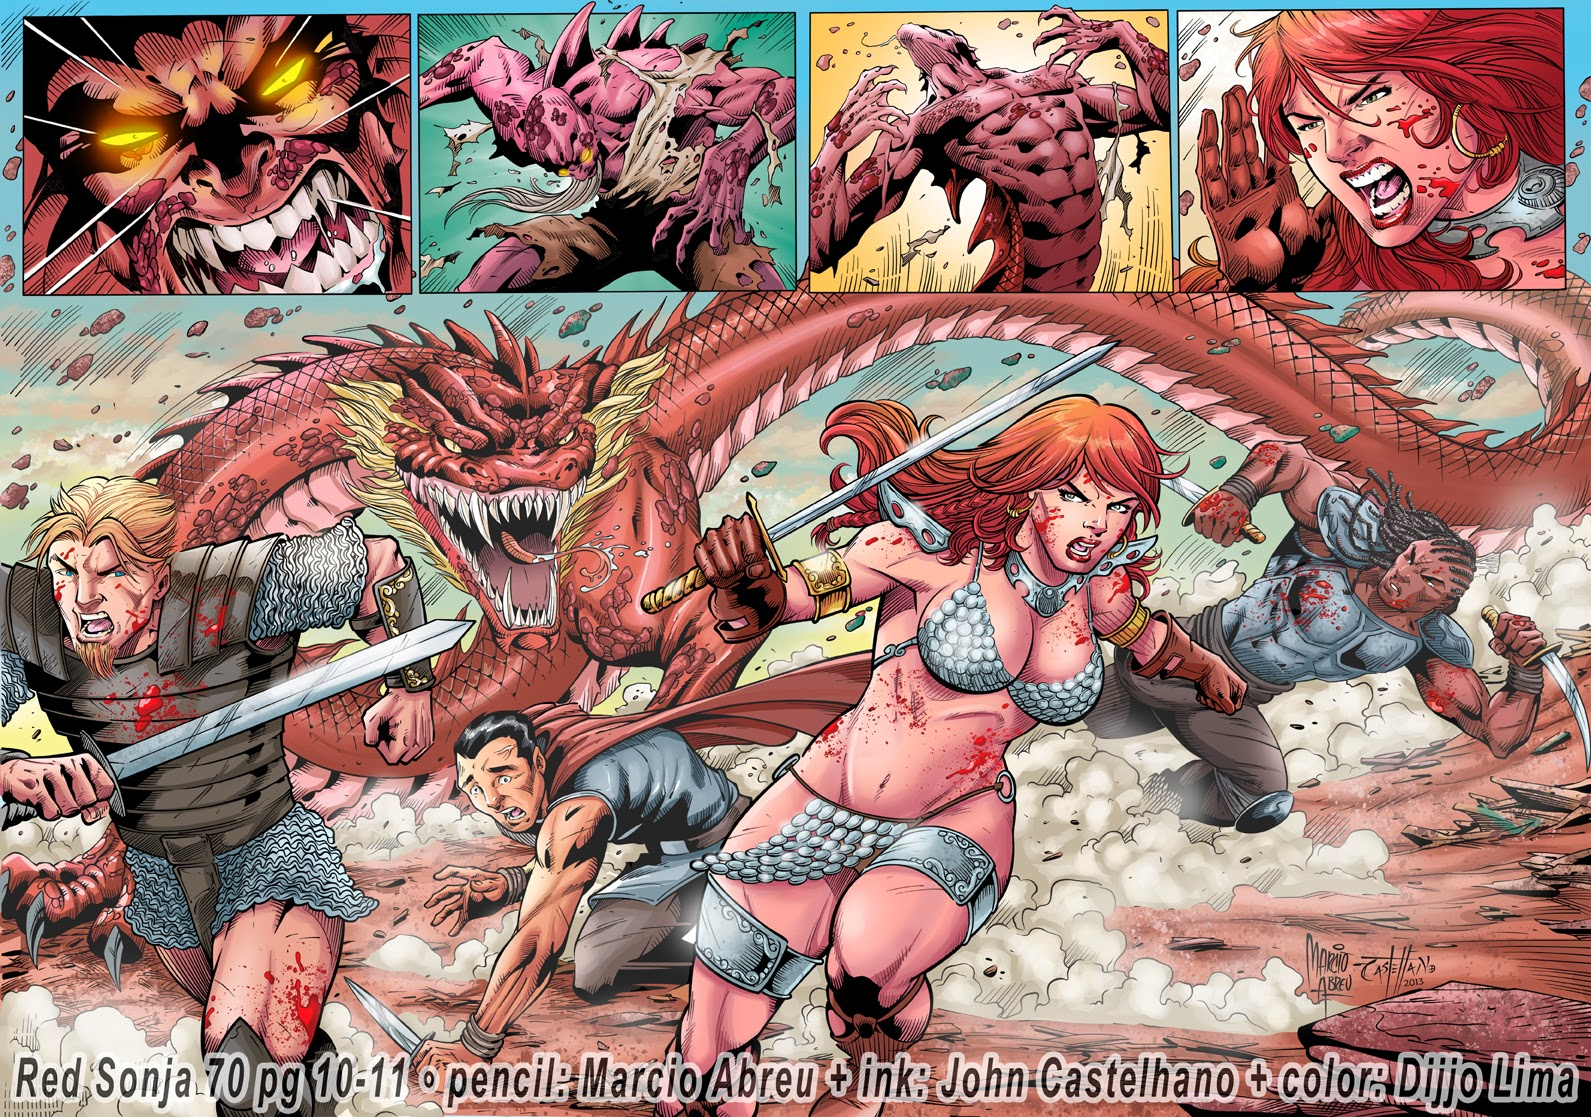 Red Sonja 70 Pg 10 - 11 by  Pencil: Marcio Abreu -  Digital Ink: Mine (John Castelhano)  - Digital Color: Dijjo Lima